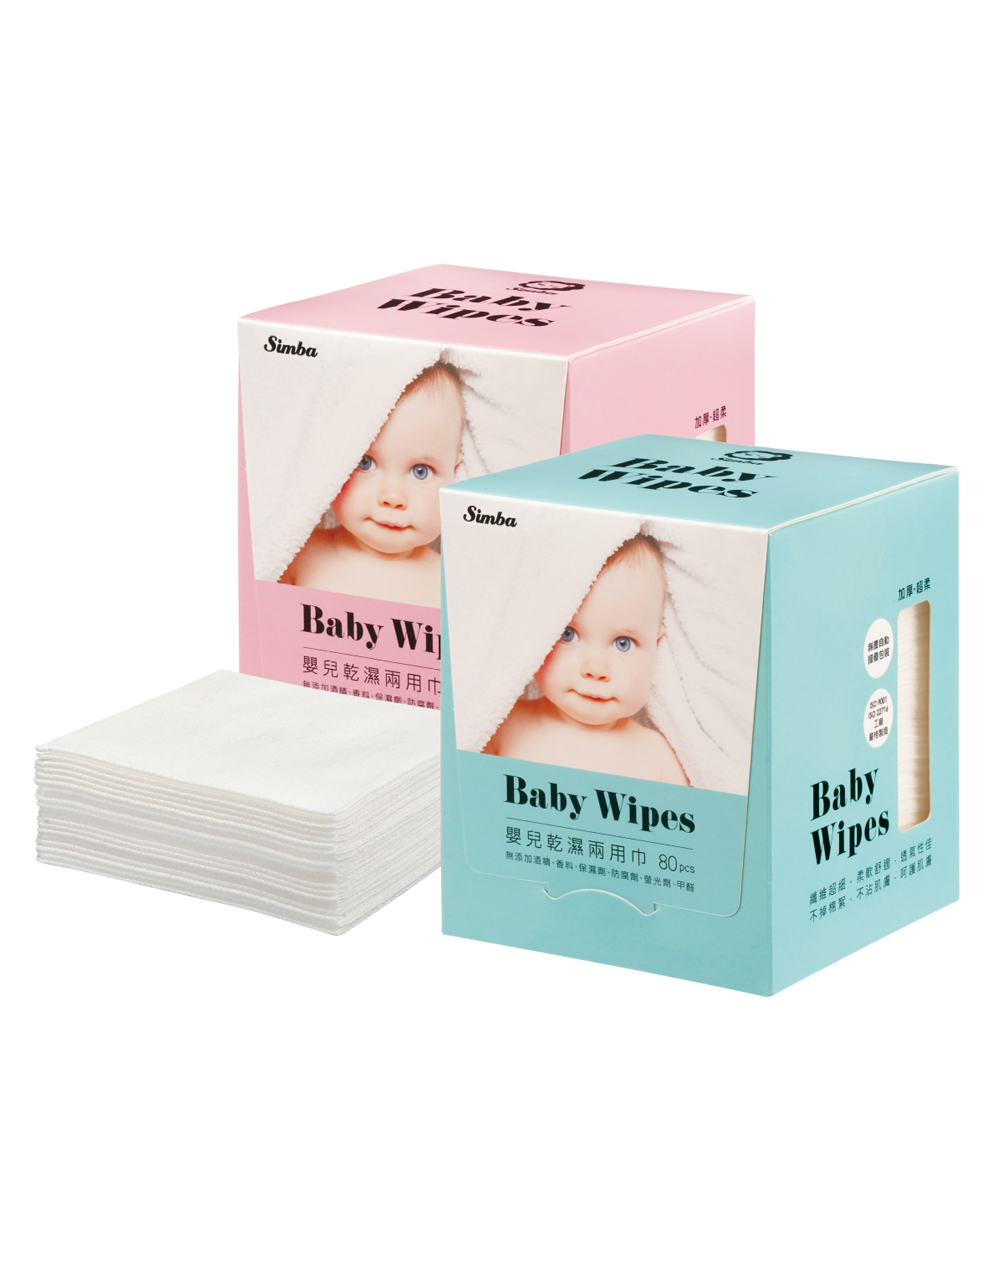 Baby wipes (80 sheets)